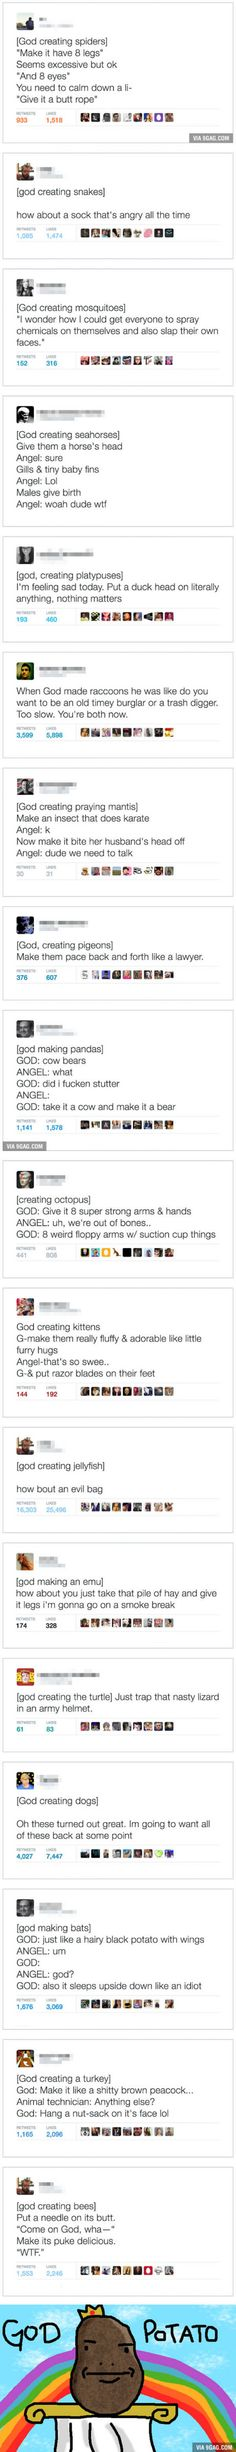 Twitter Reveals How God Created Animals